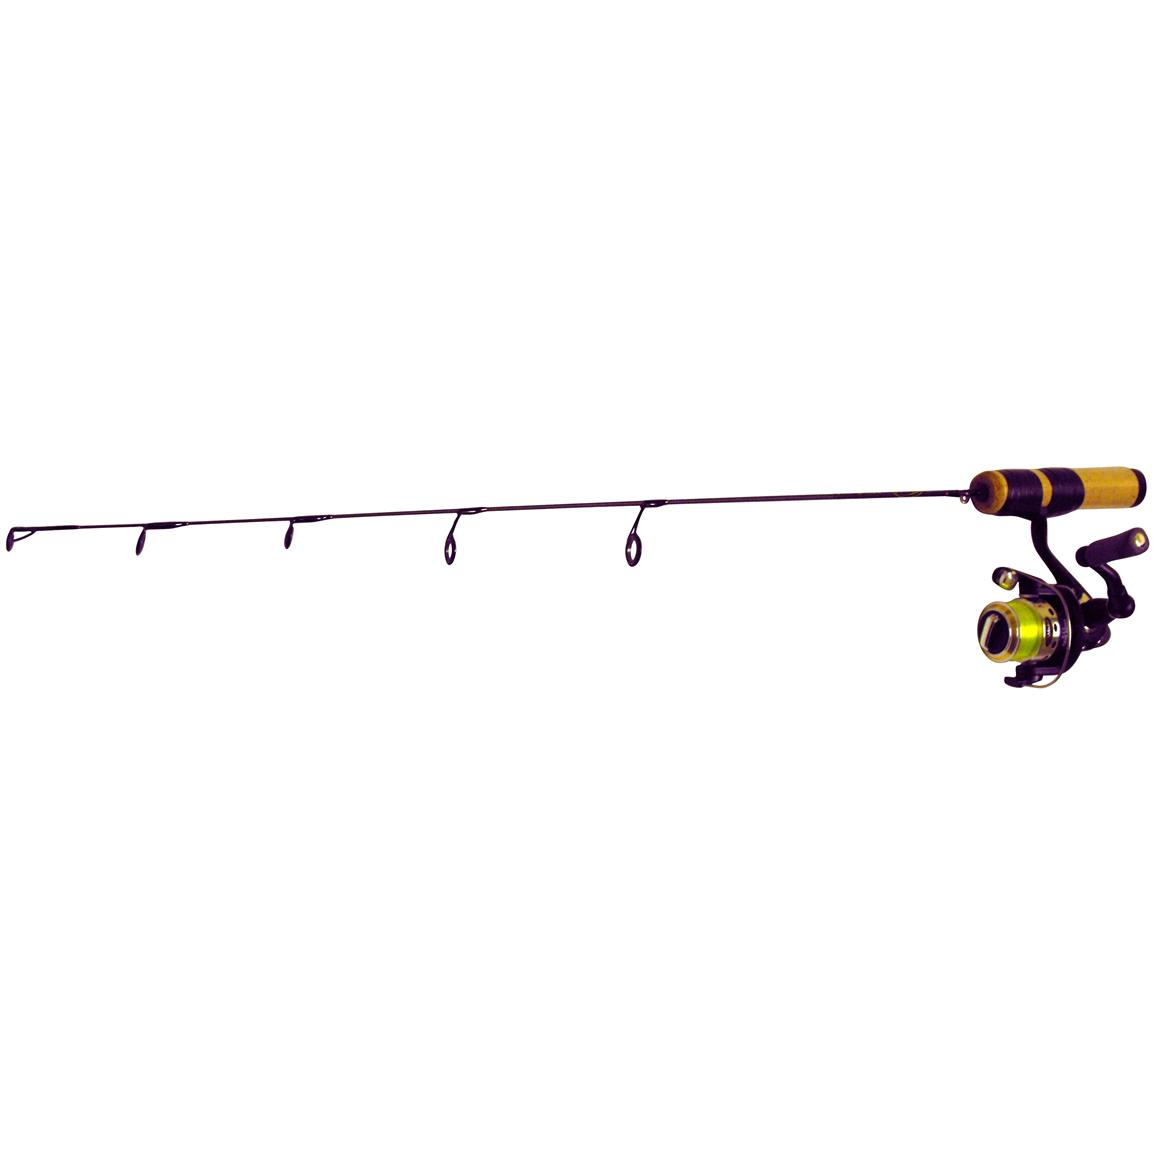 Clam elite series 24 medium action walleye rod and reel for Best walleye ice fishing rod